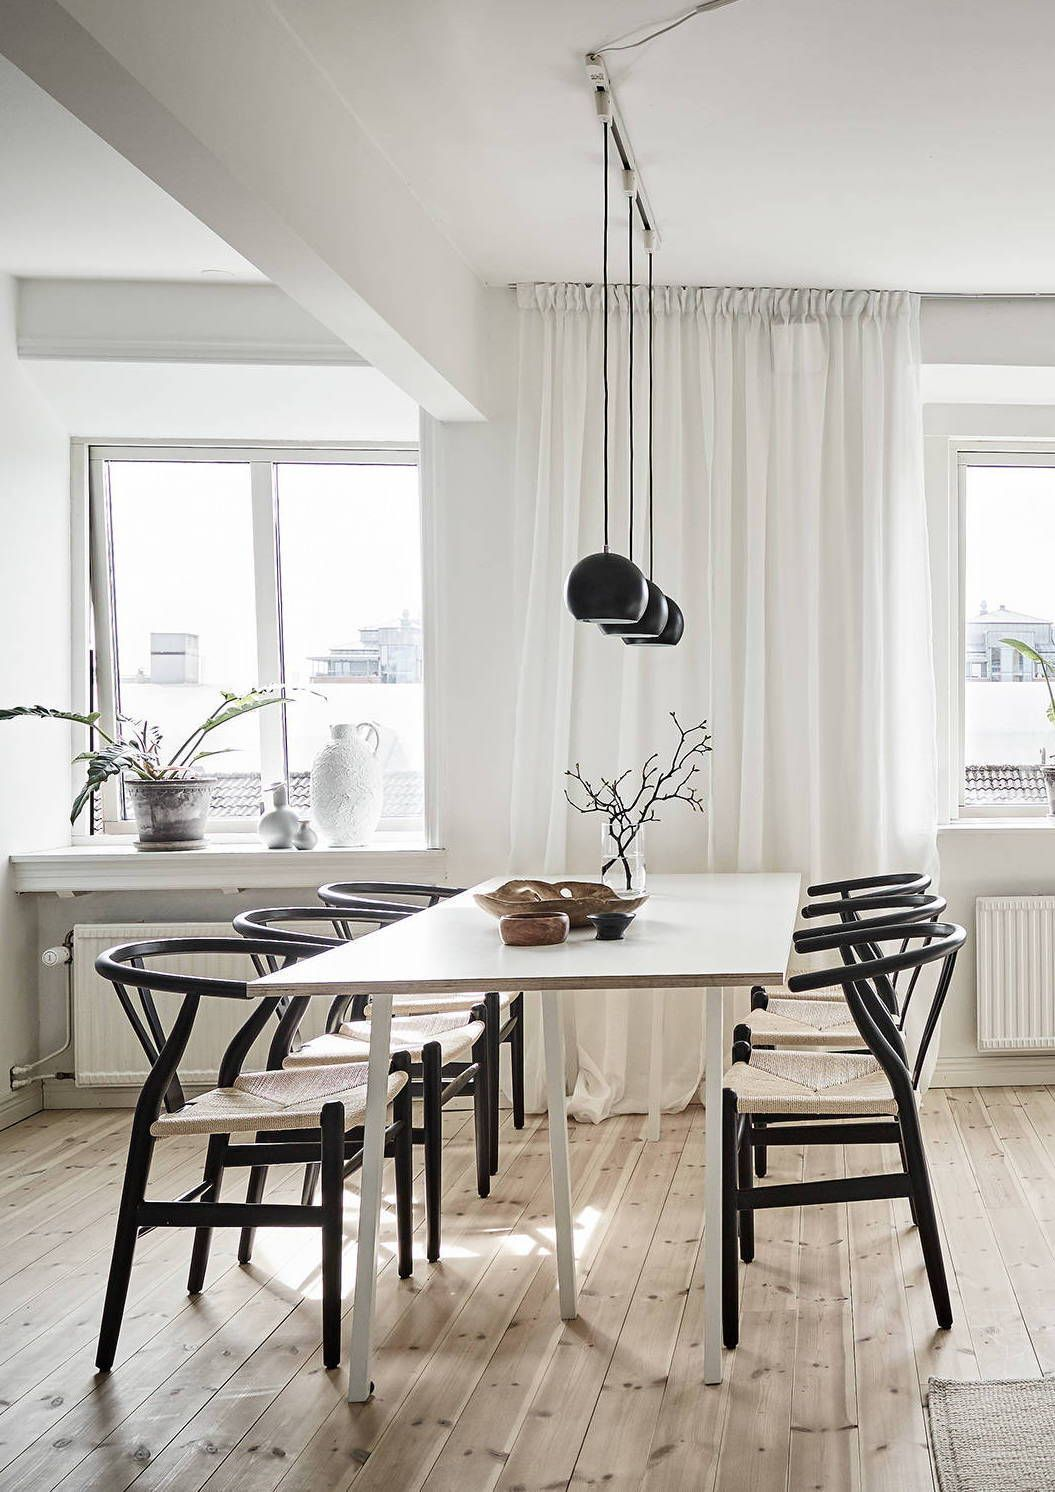 Adorable inexpensive dining room sets that are worth to buy cozy home with a practical layout via coco lapine design blog connox beunique